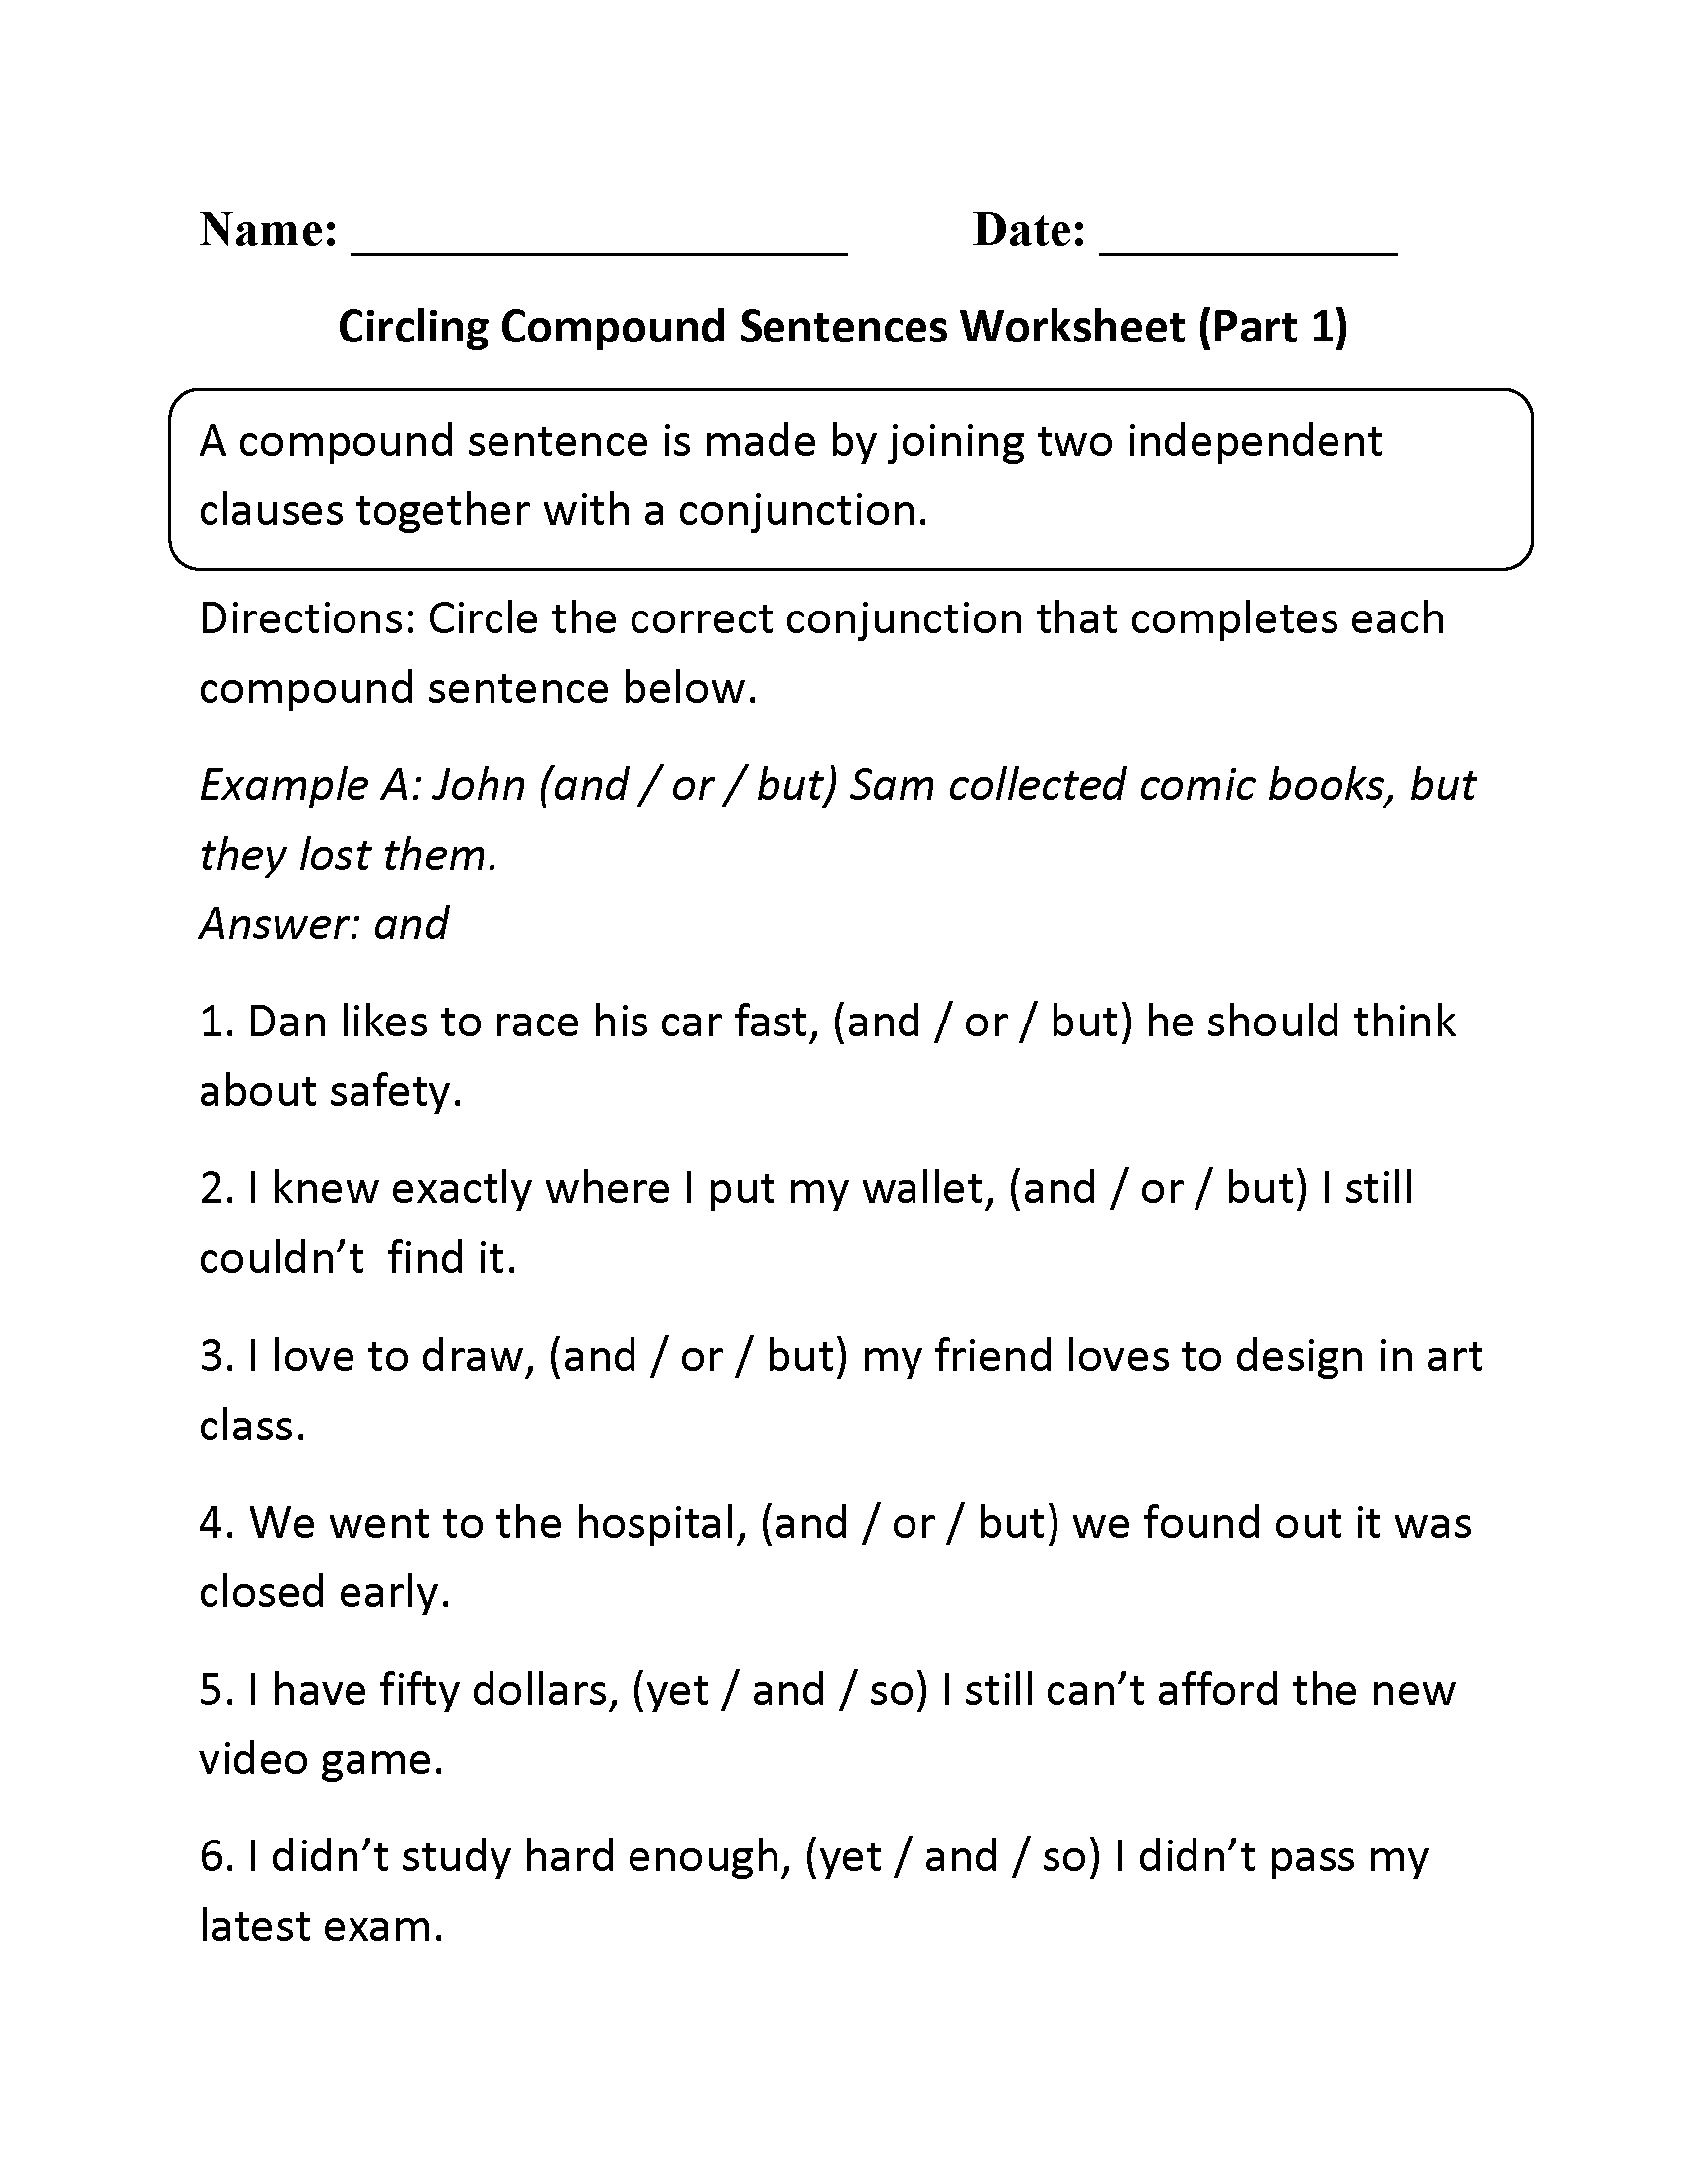 Circling Compound Sentences Worksheet Part 1